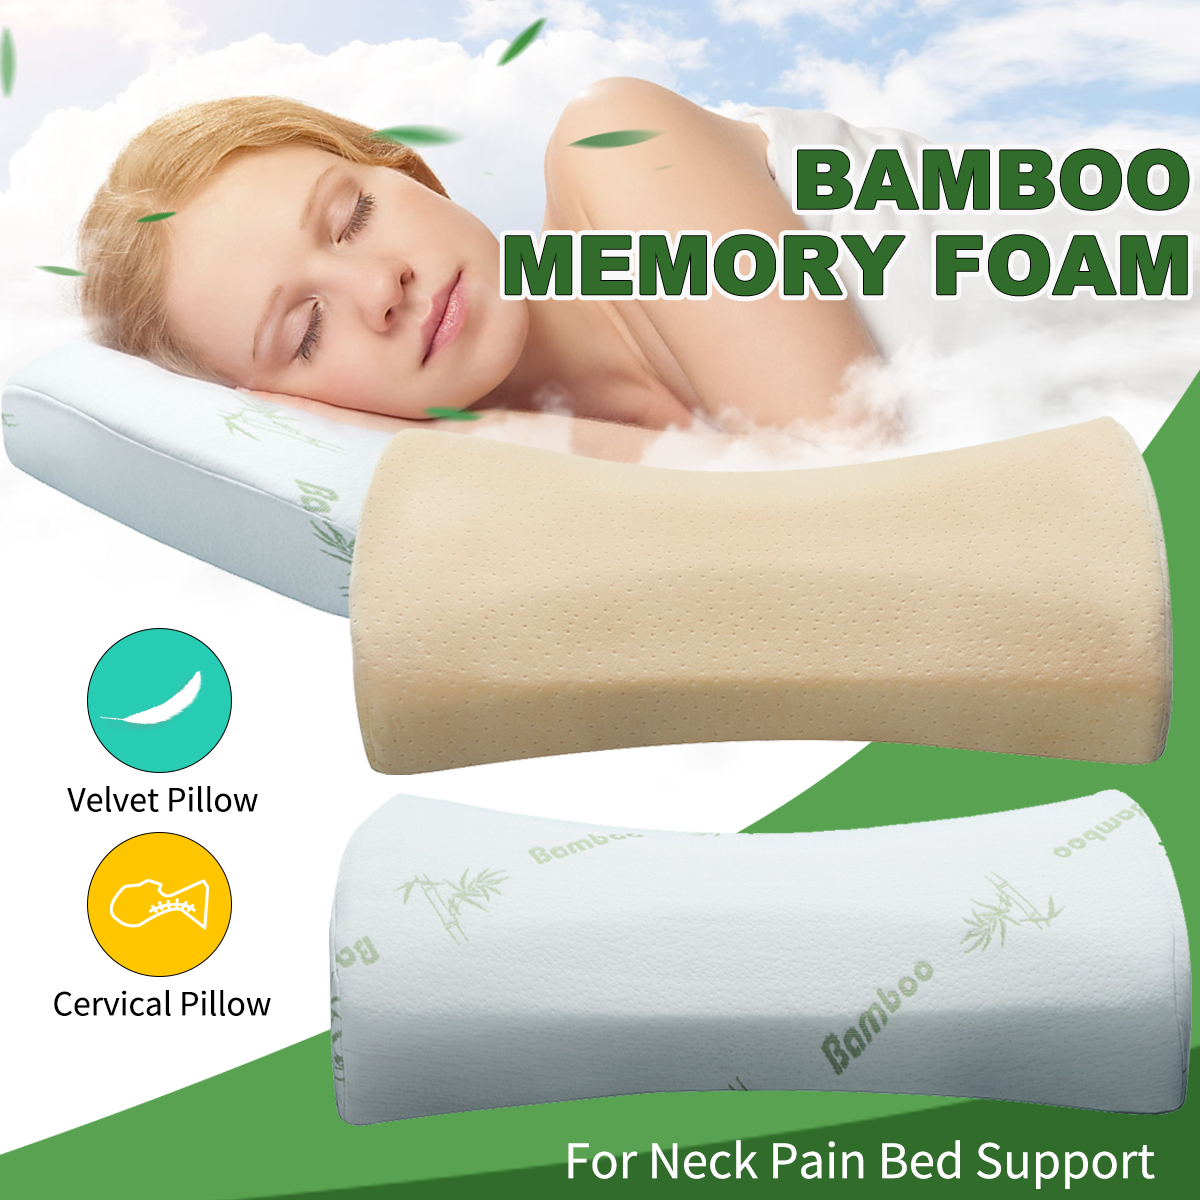 4 thick premium bamboo pillow memory foam pillow cervical pillow for neck pain bed support effectively relieve sleep snoring best gift for your